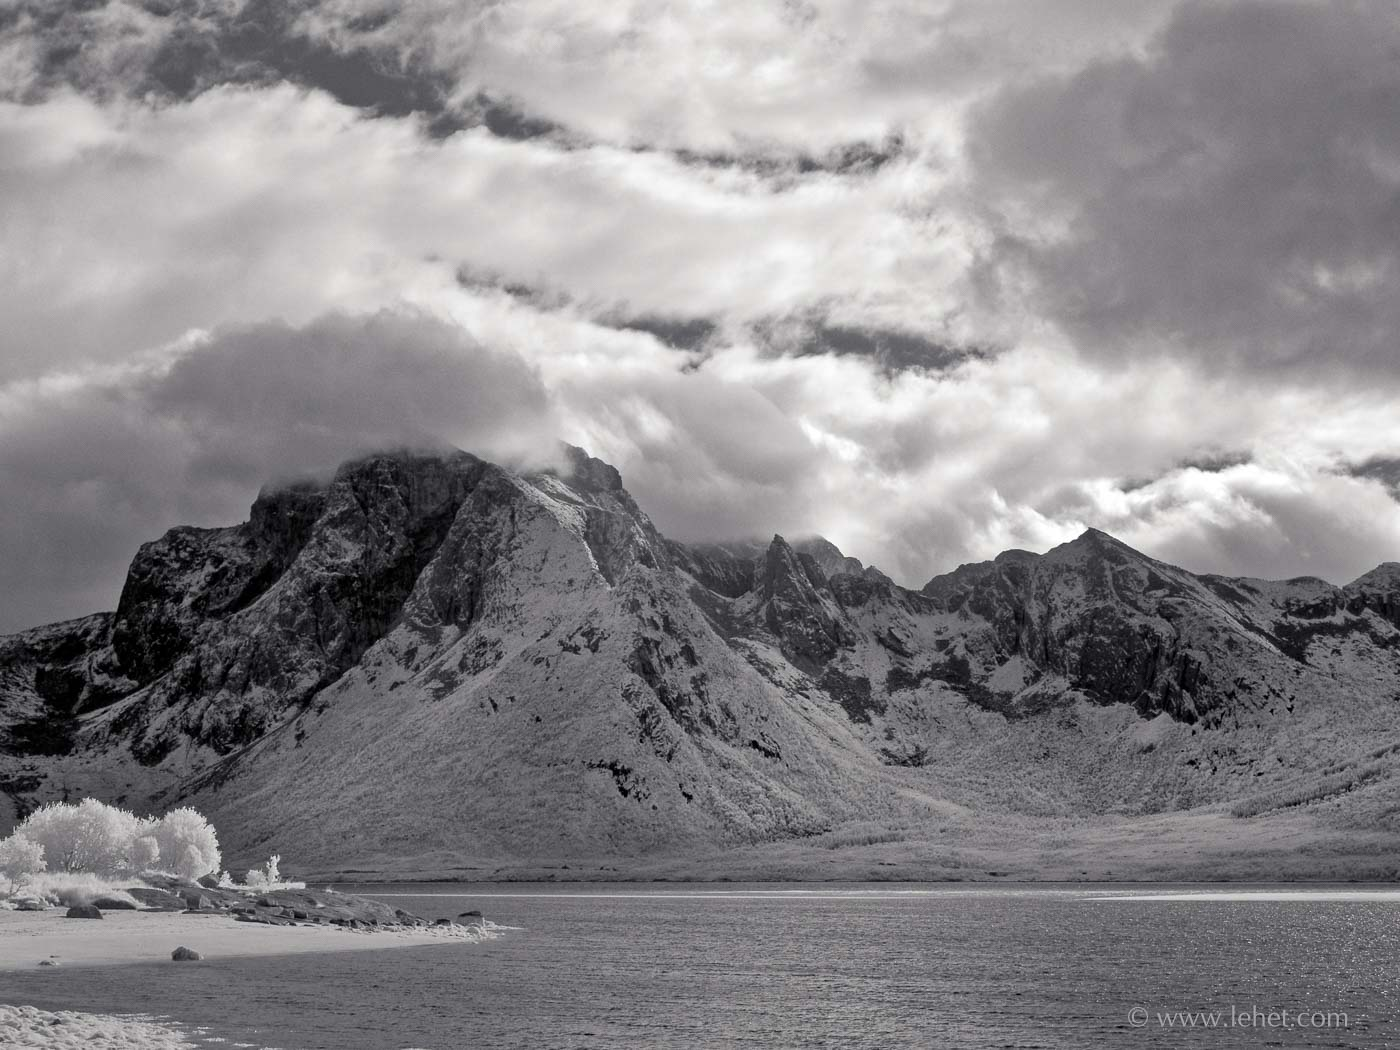 Lofoten Islands Norway, Infrared